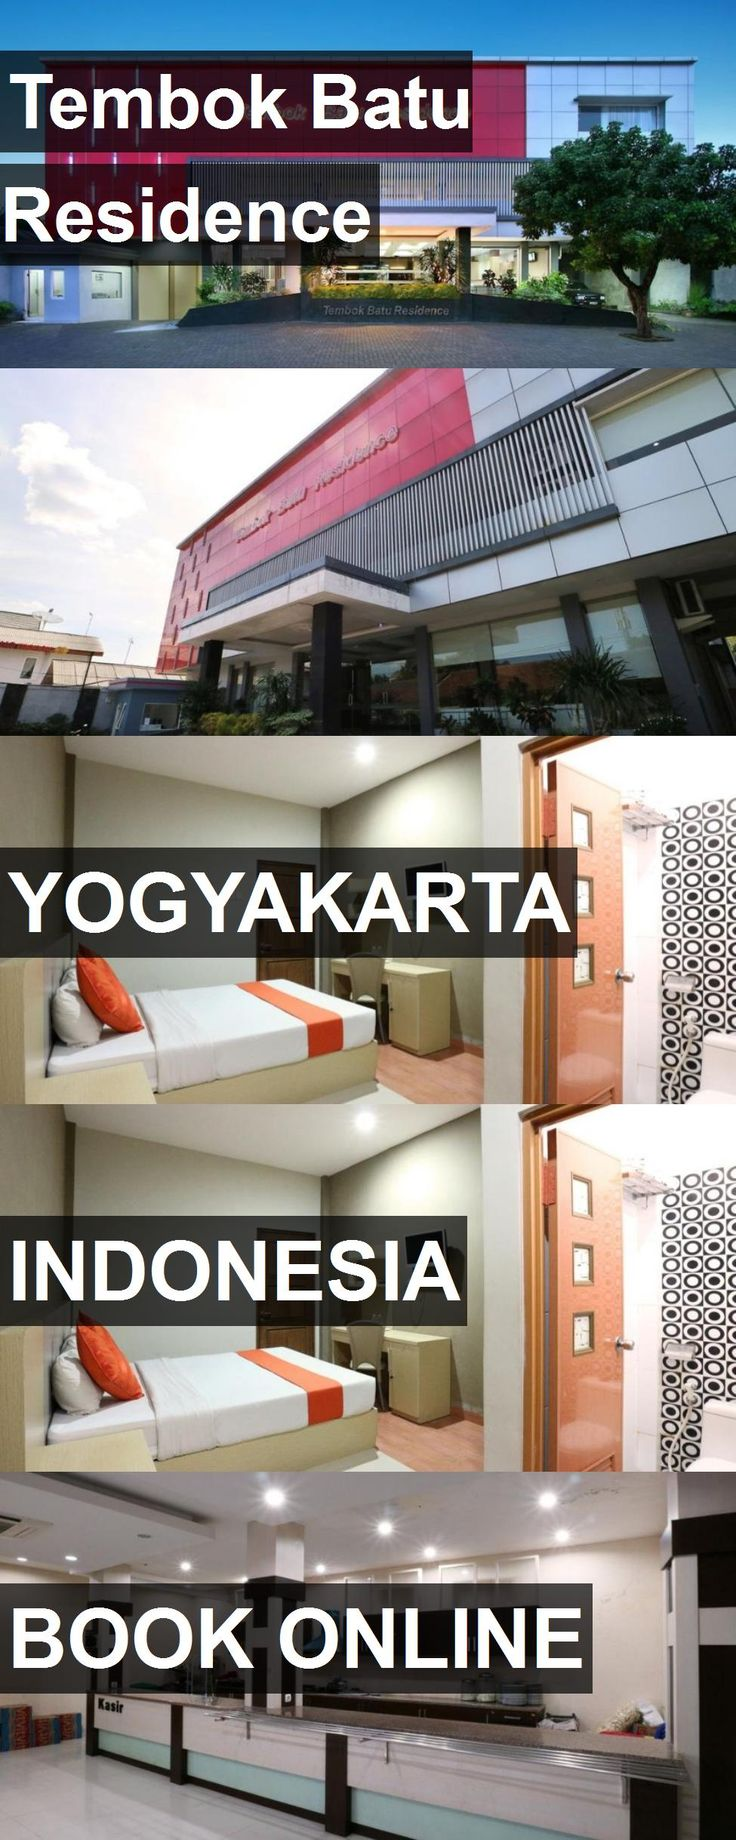 Hotel Tembok Batu Residence in Yogyakarta, Indonesia. For more information, photos, reviews and best prices please follow the link. #Indonesia #Yogyakarta #travel #vacation #hotel